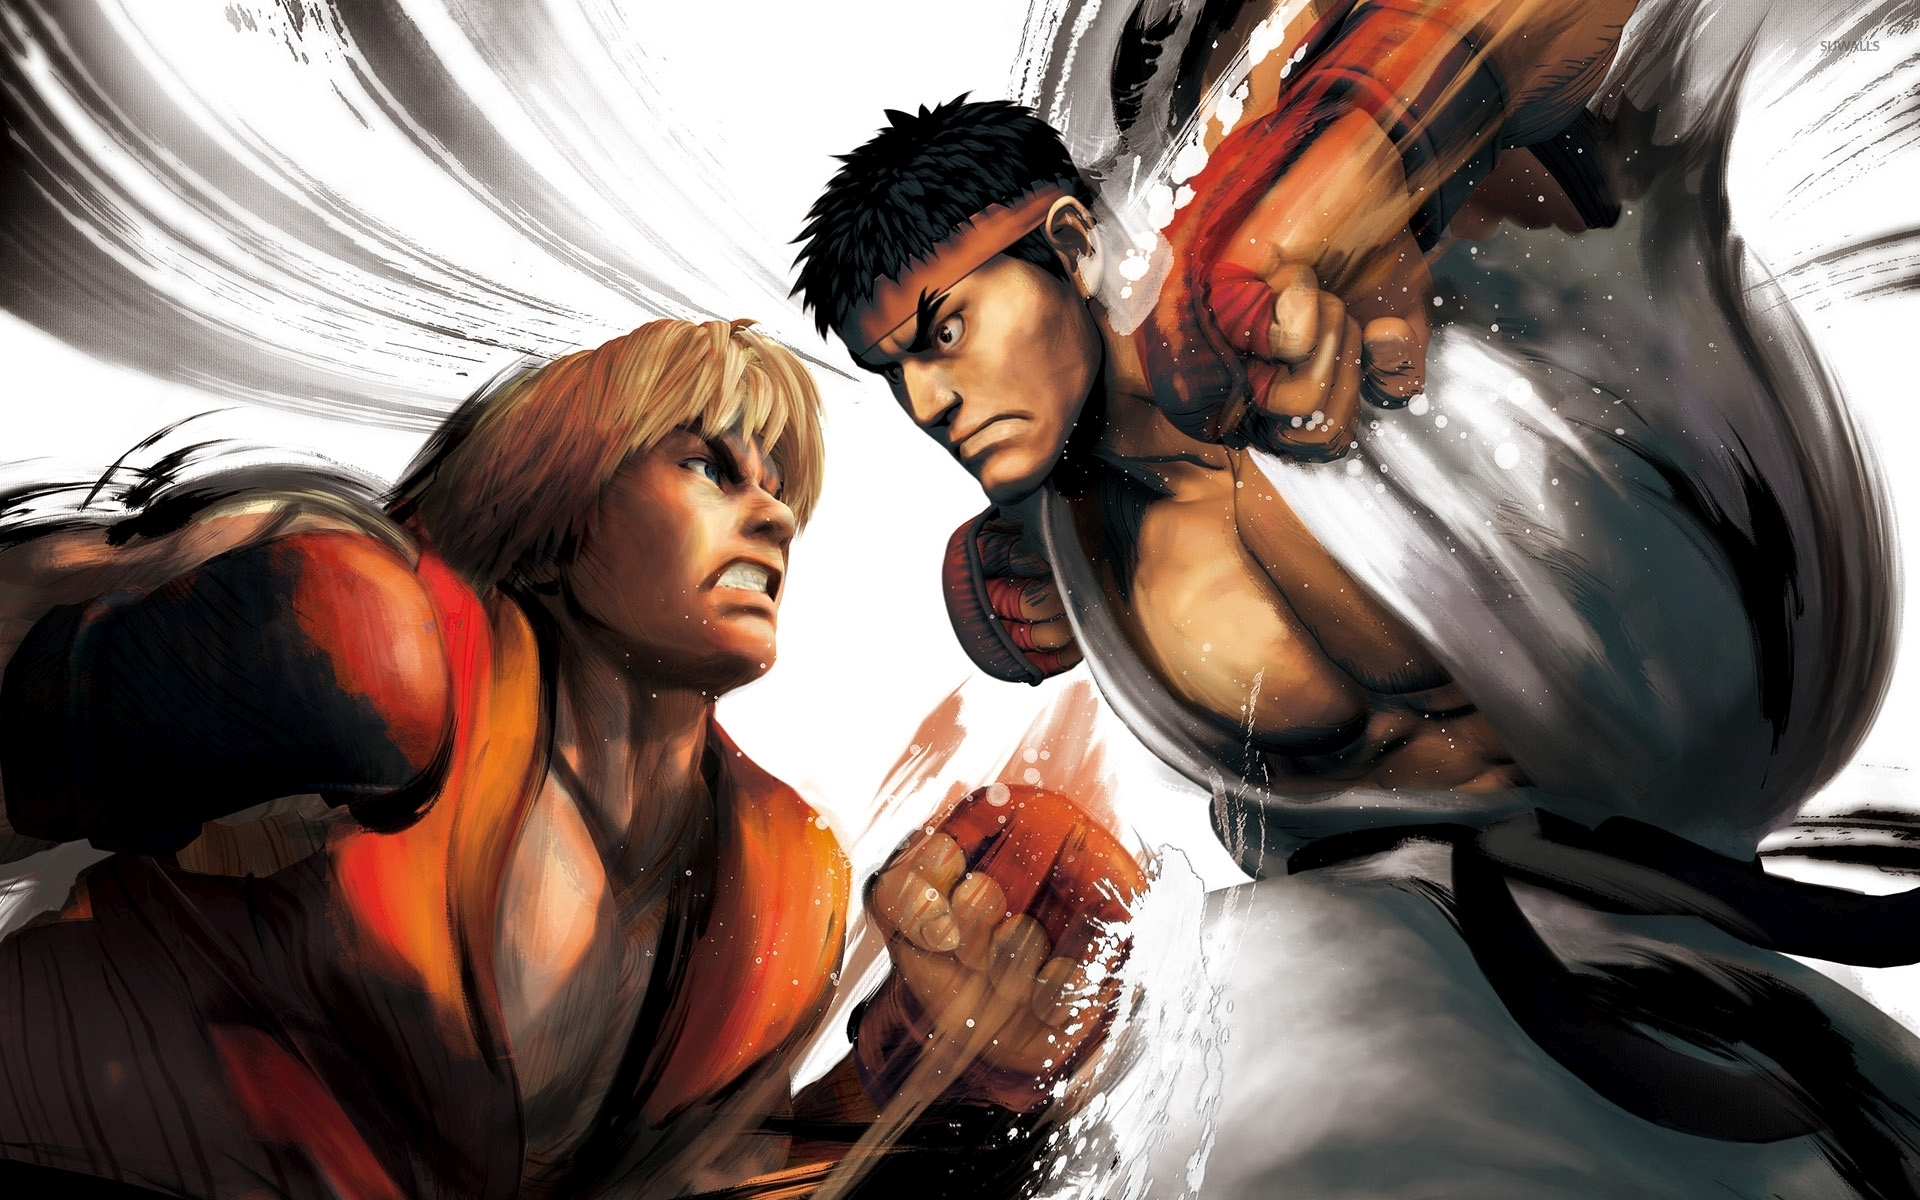 Ryu Street Fighter Wallpaper Game Wallpapers 34971